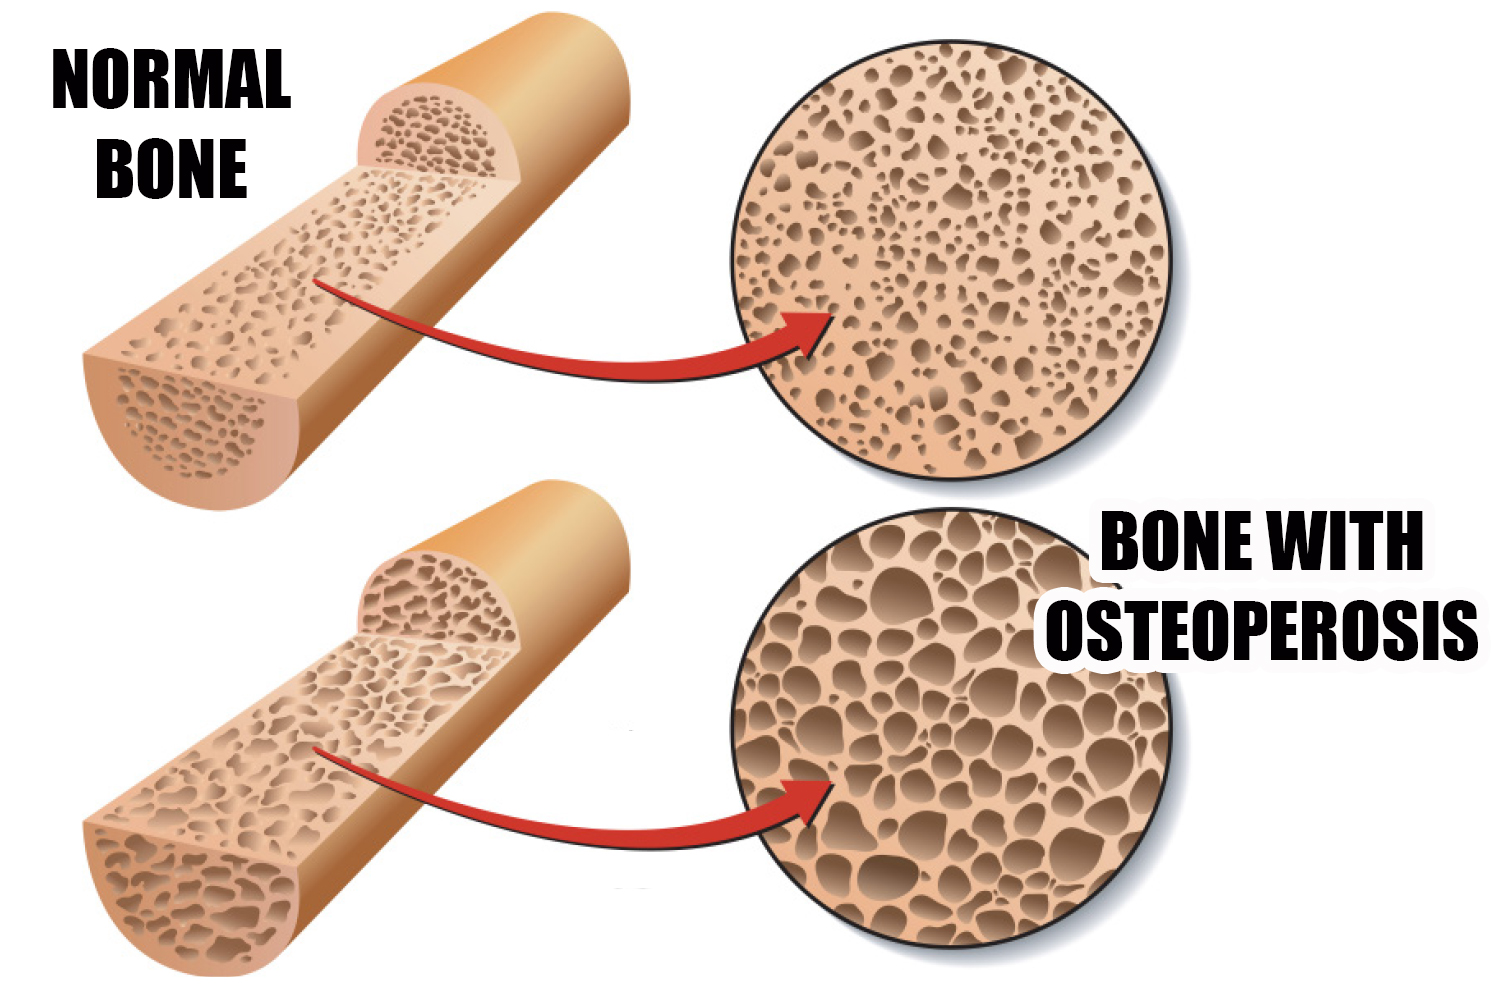 osteoperosis and the normal bones